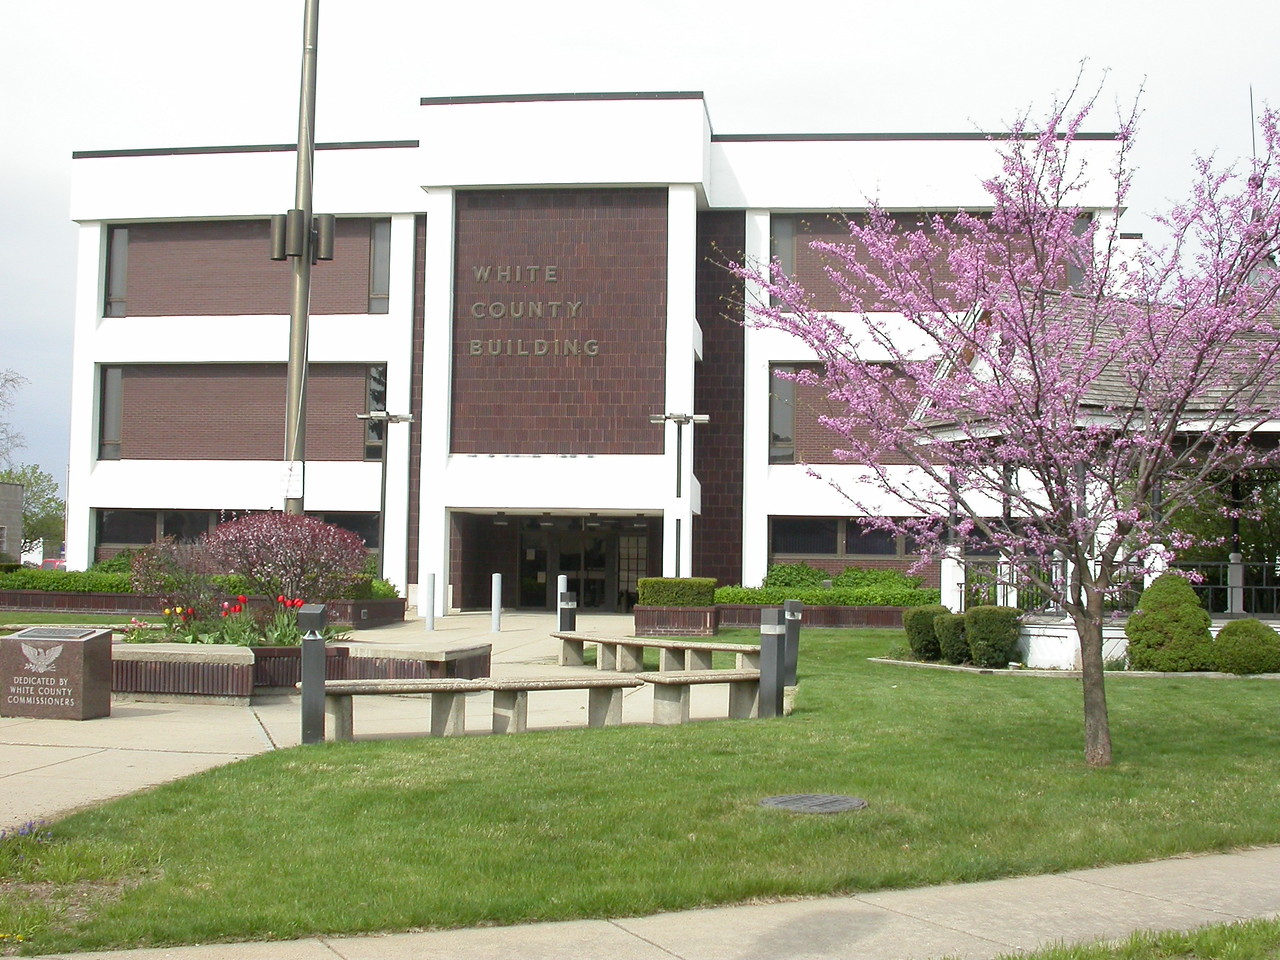 White County Courthouse, Monticello, Indiana, April 2004.  Previous Courthouse was destroyed in the April 3, 1974 tornado.